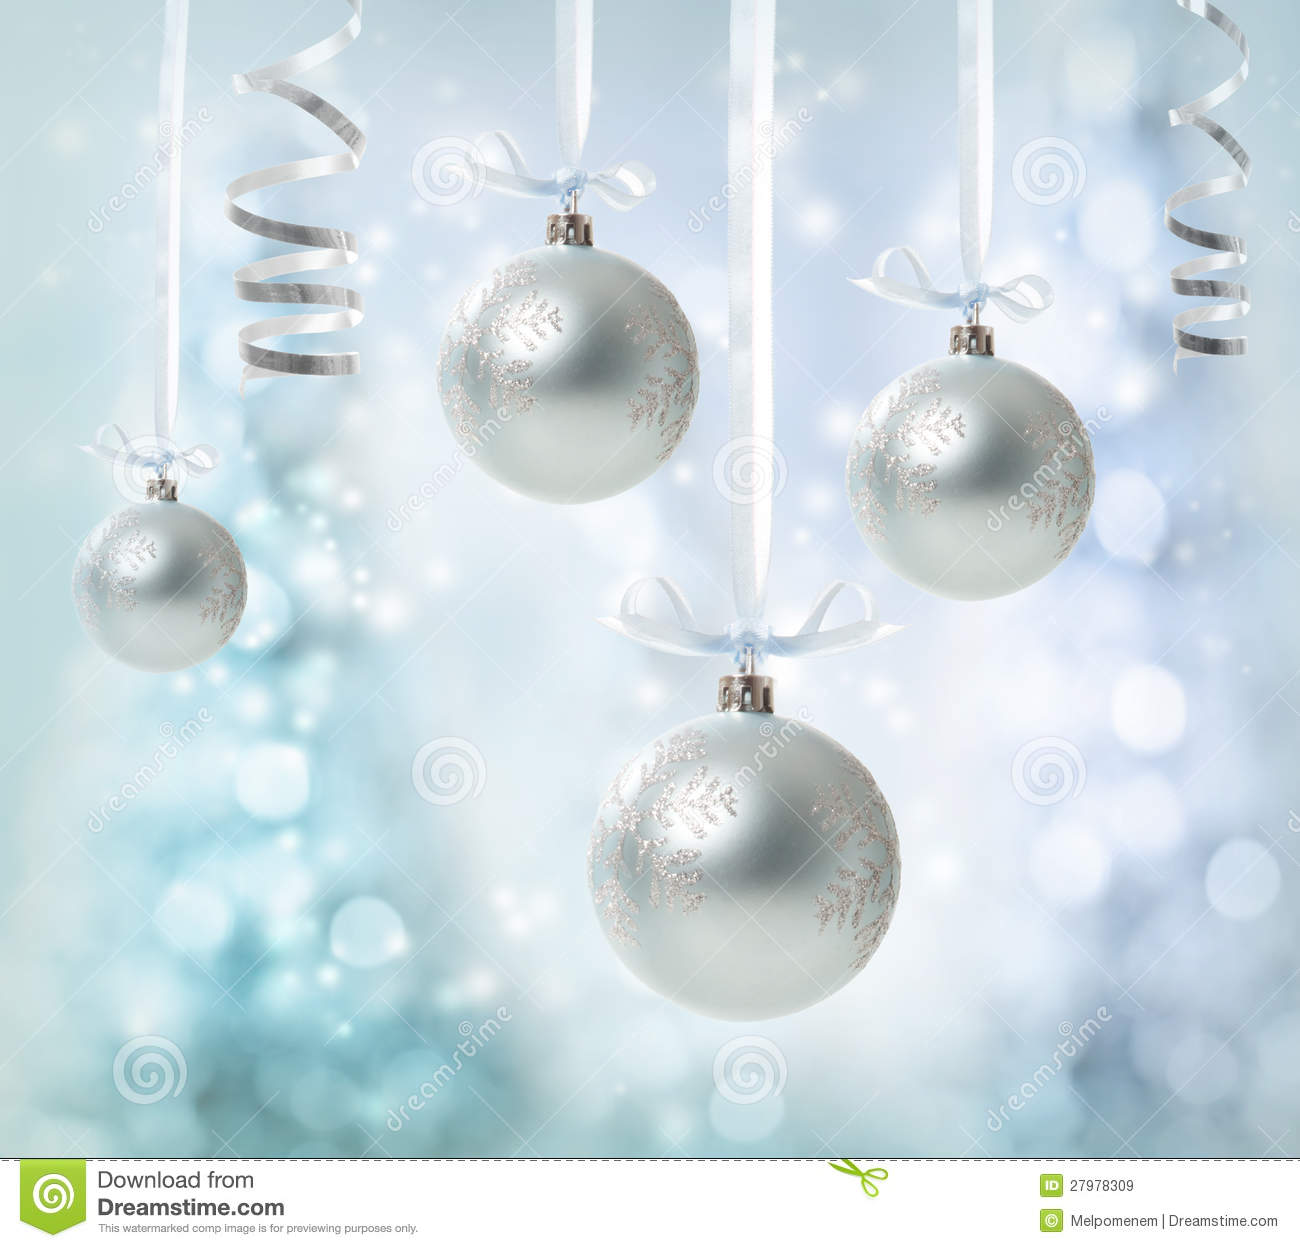 Hanging Silver Christmas Ornaments Royalty Free Stock